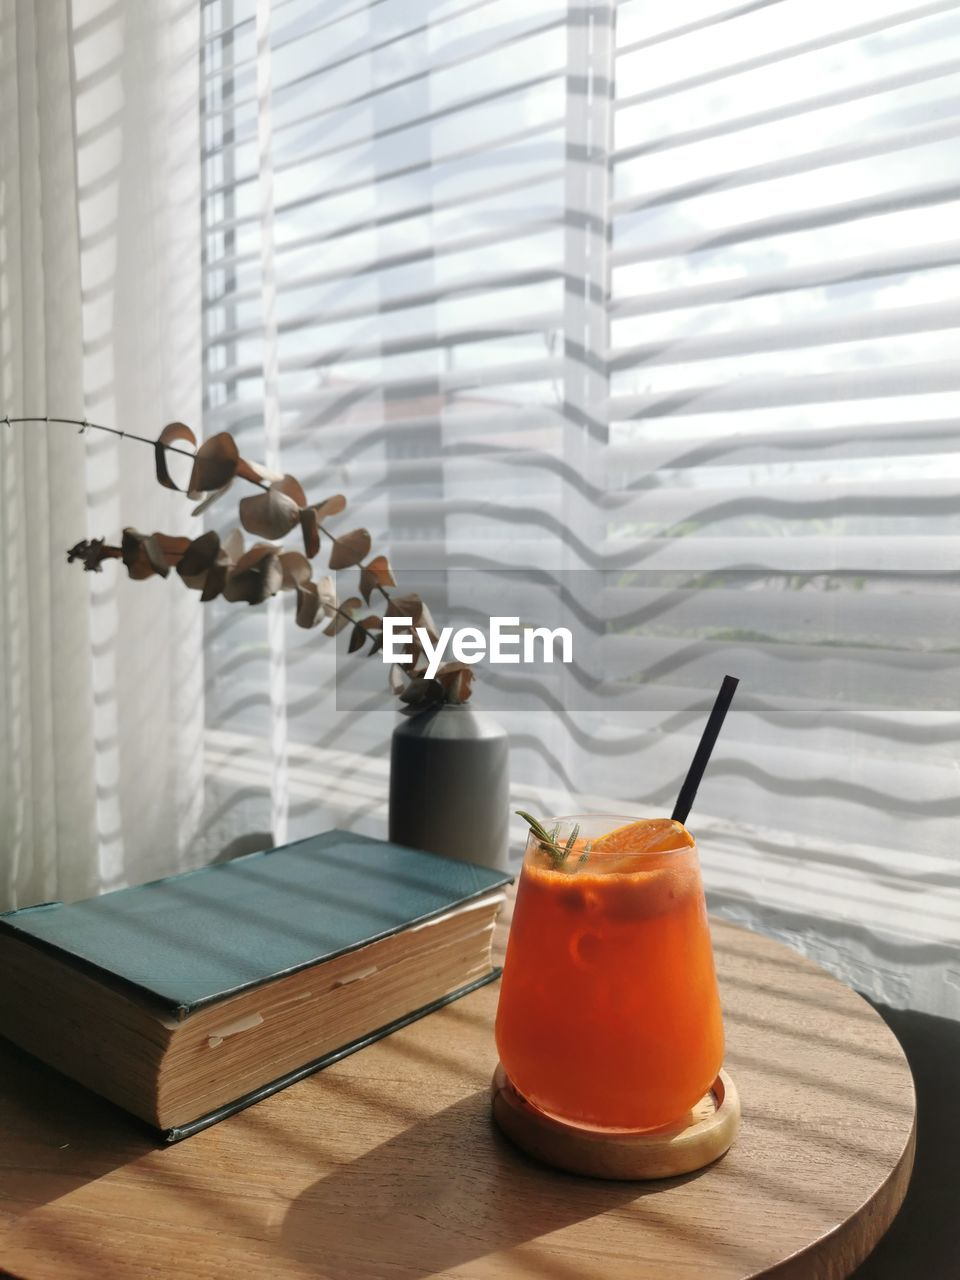 CLOSE-UP OF DRINK ON GLASS WINDOW